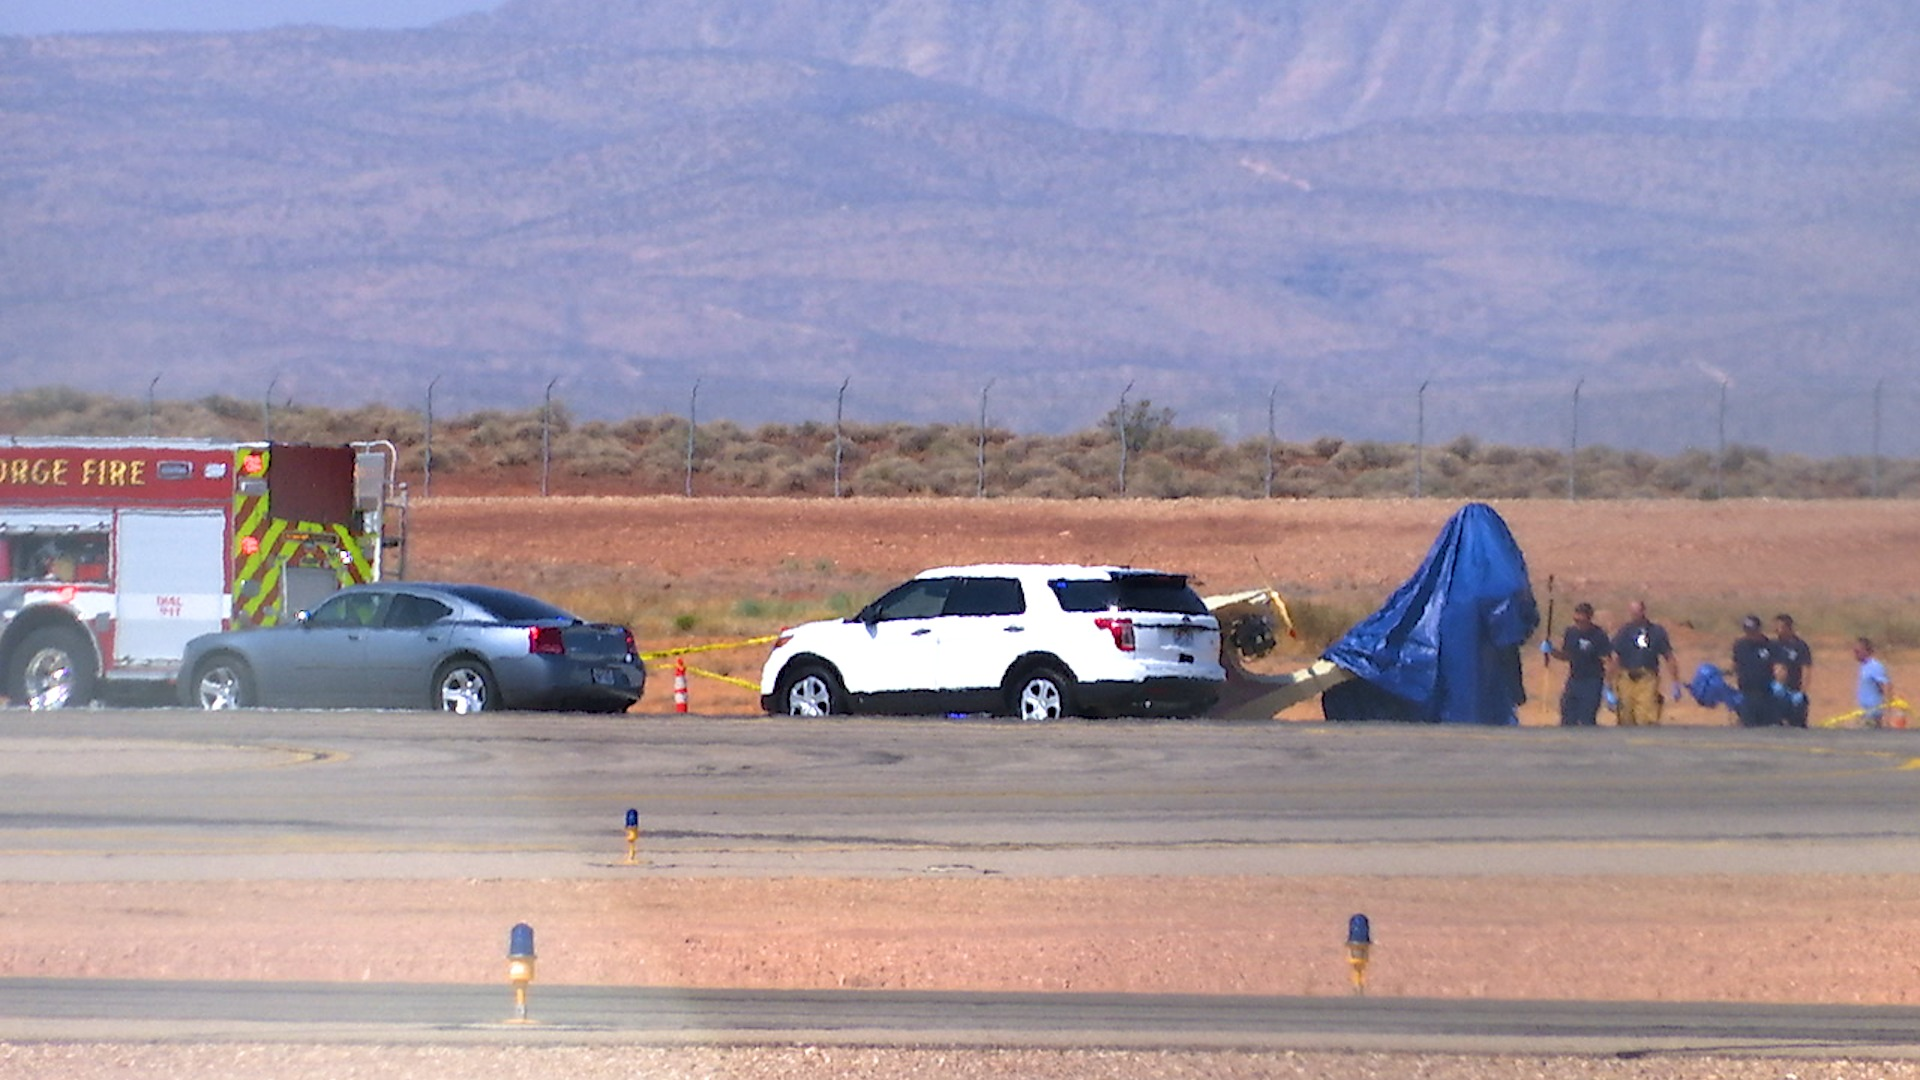 Emergency personnel place a blue tarp on the tail of an aircraft that crashed at St. George Regional Airport, killing the pilot, Sterling Palmer, 69, of St. George, on Saturday, Aug. 11, 2018.